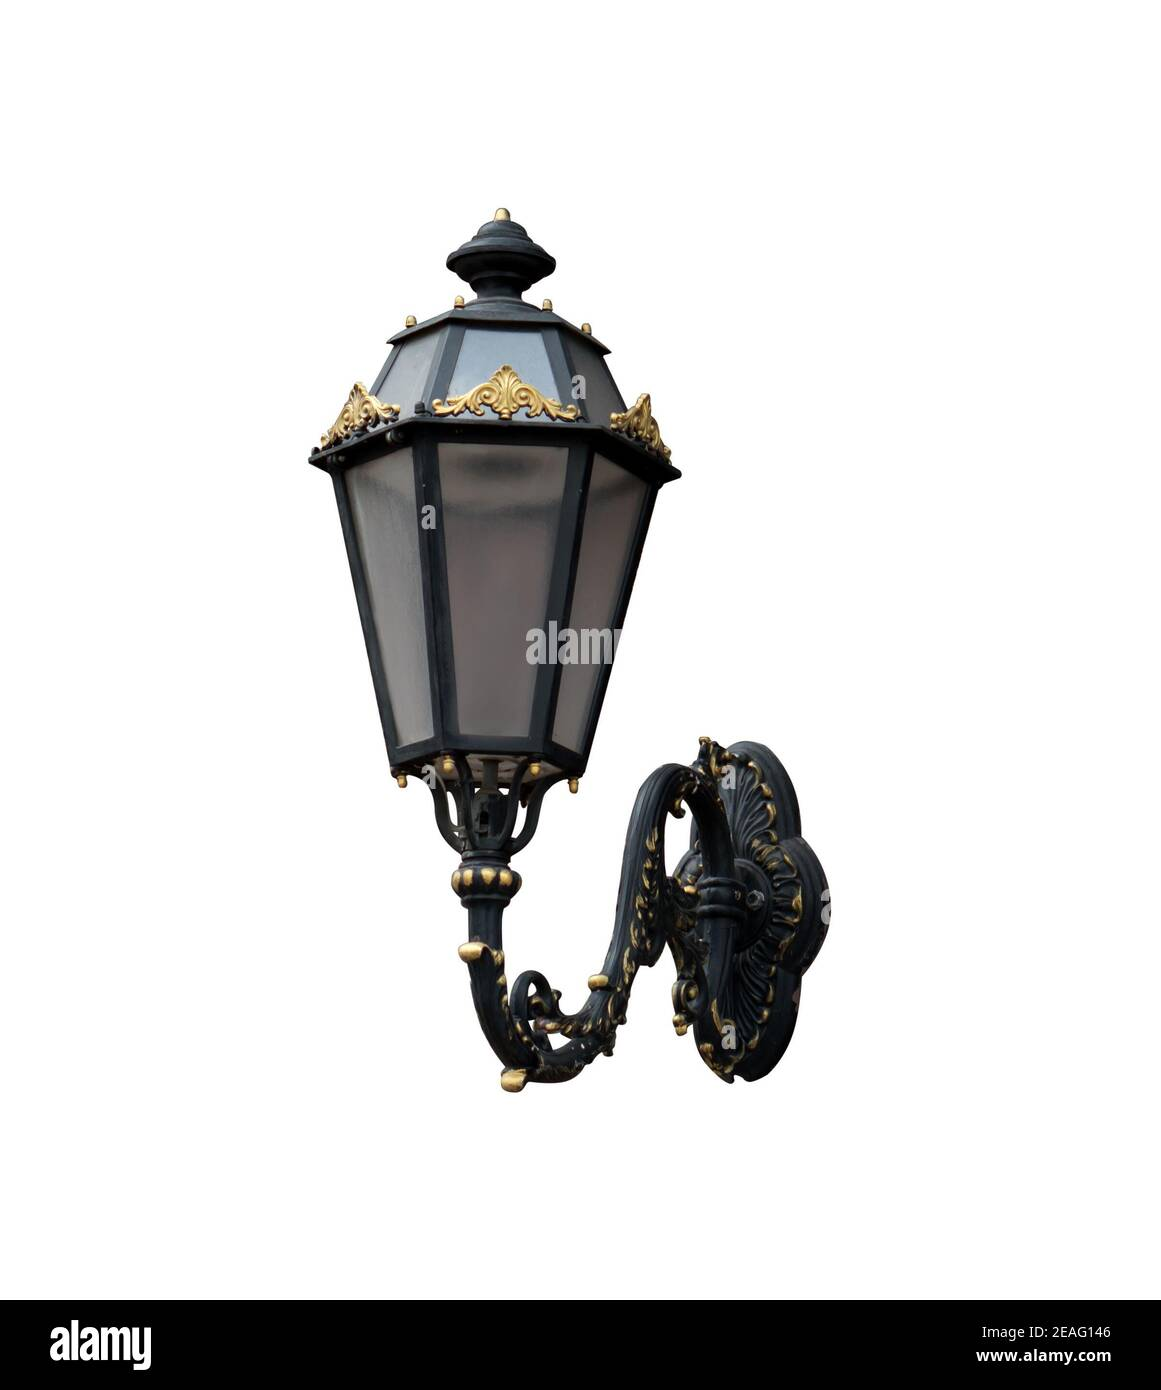 Vintage wall street lamp, on white background isolated Stock Photo